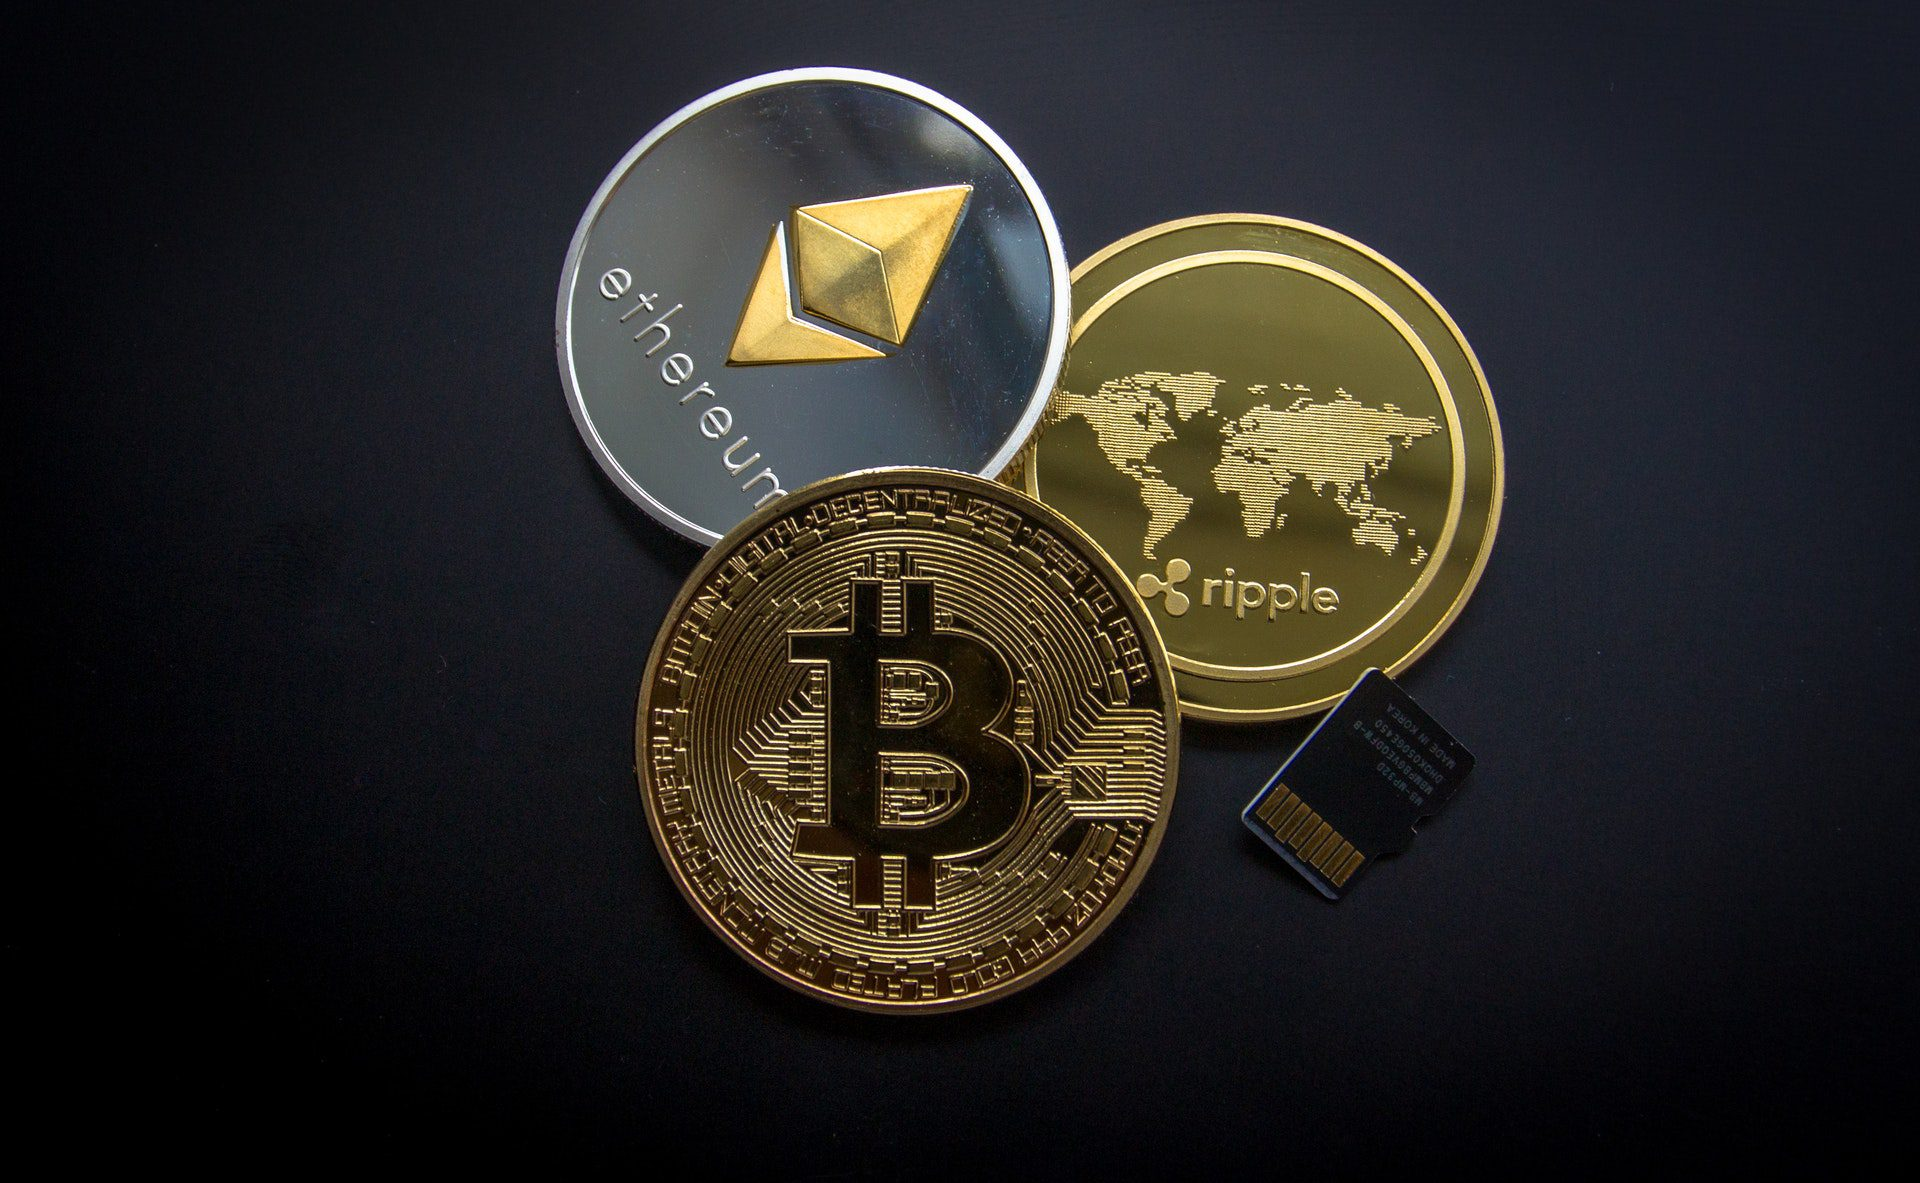 Top 5 Cryptocurrency Exchanges That Don't Require KYC